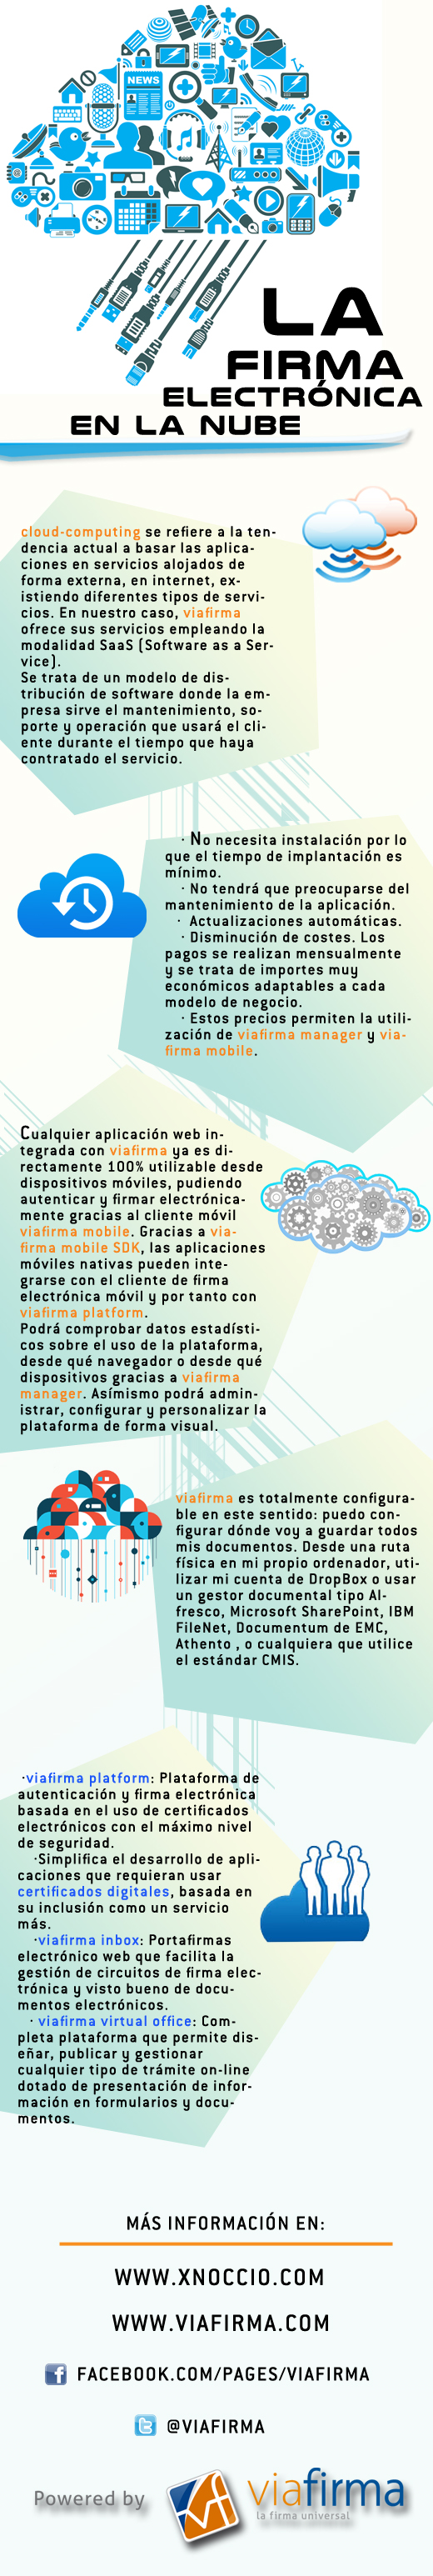 Viafirma Cloud Computing V